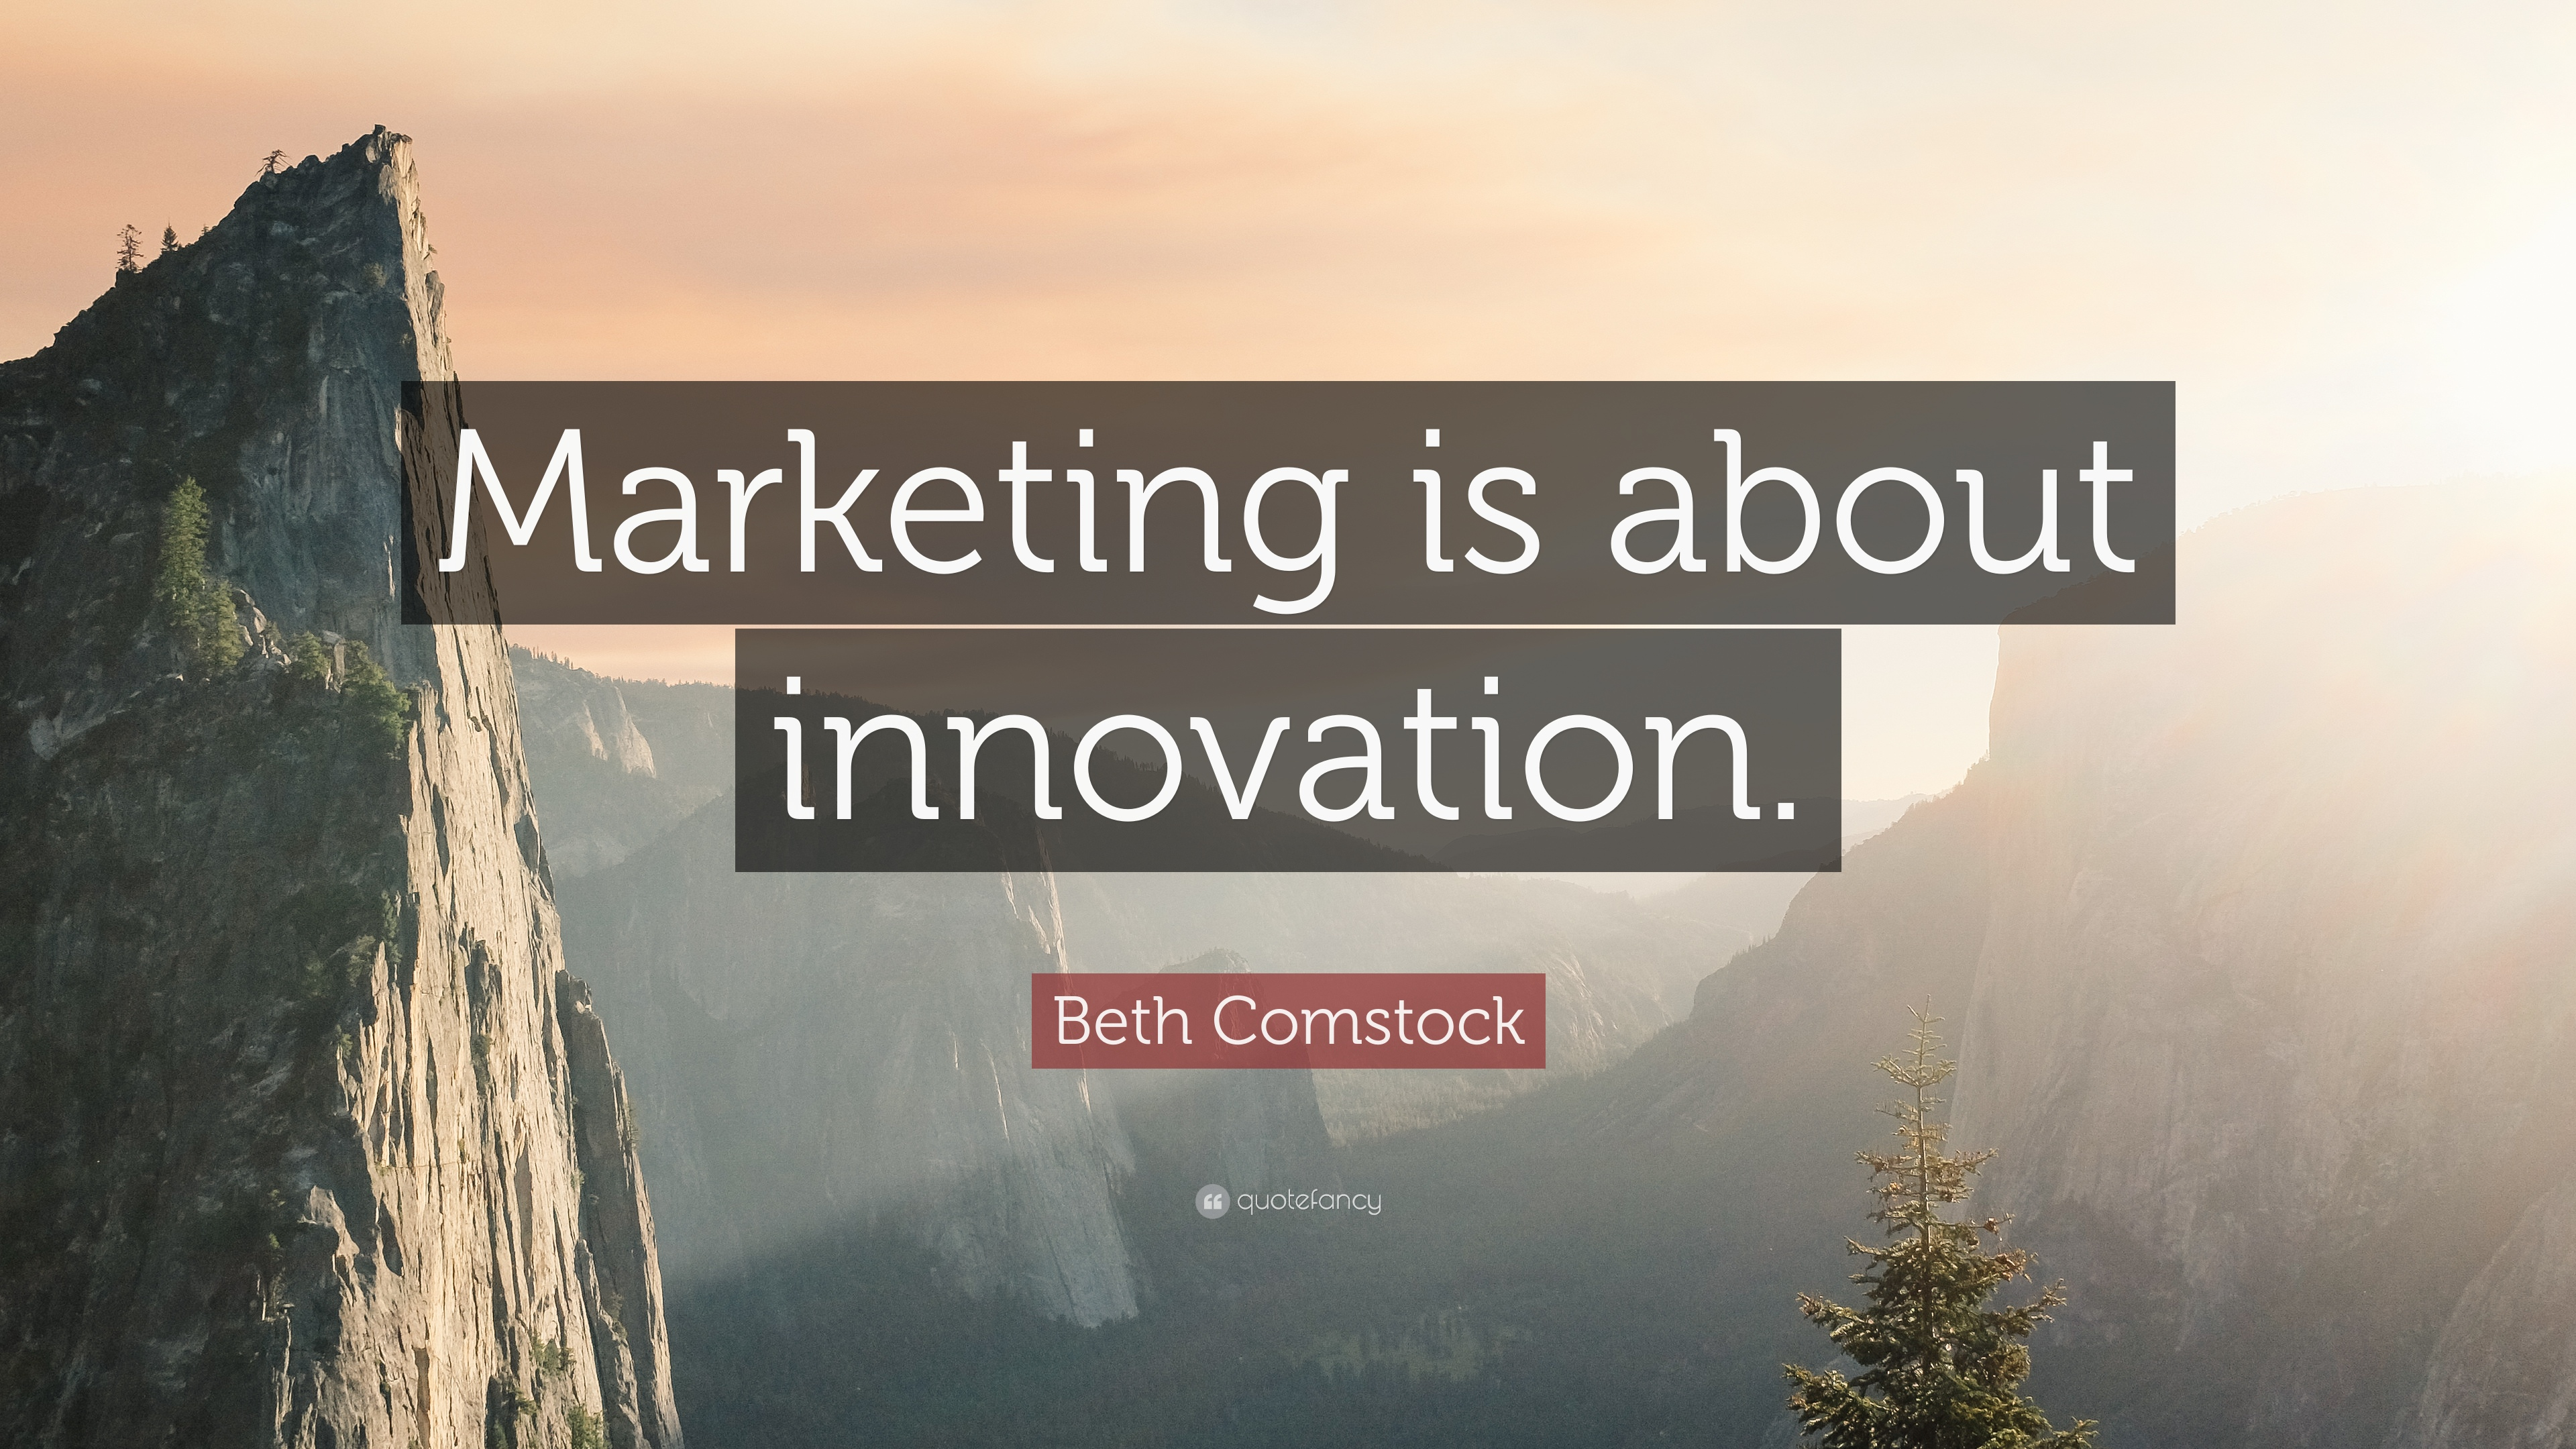 Innovation Quotes (40 wallpapers) - Quotefancy